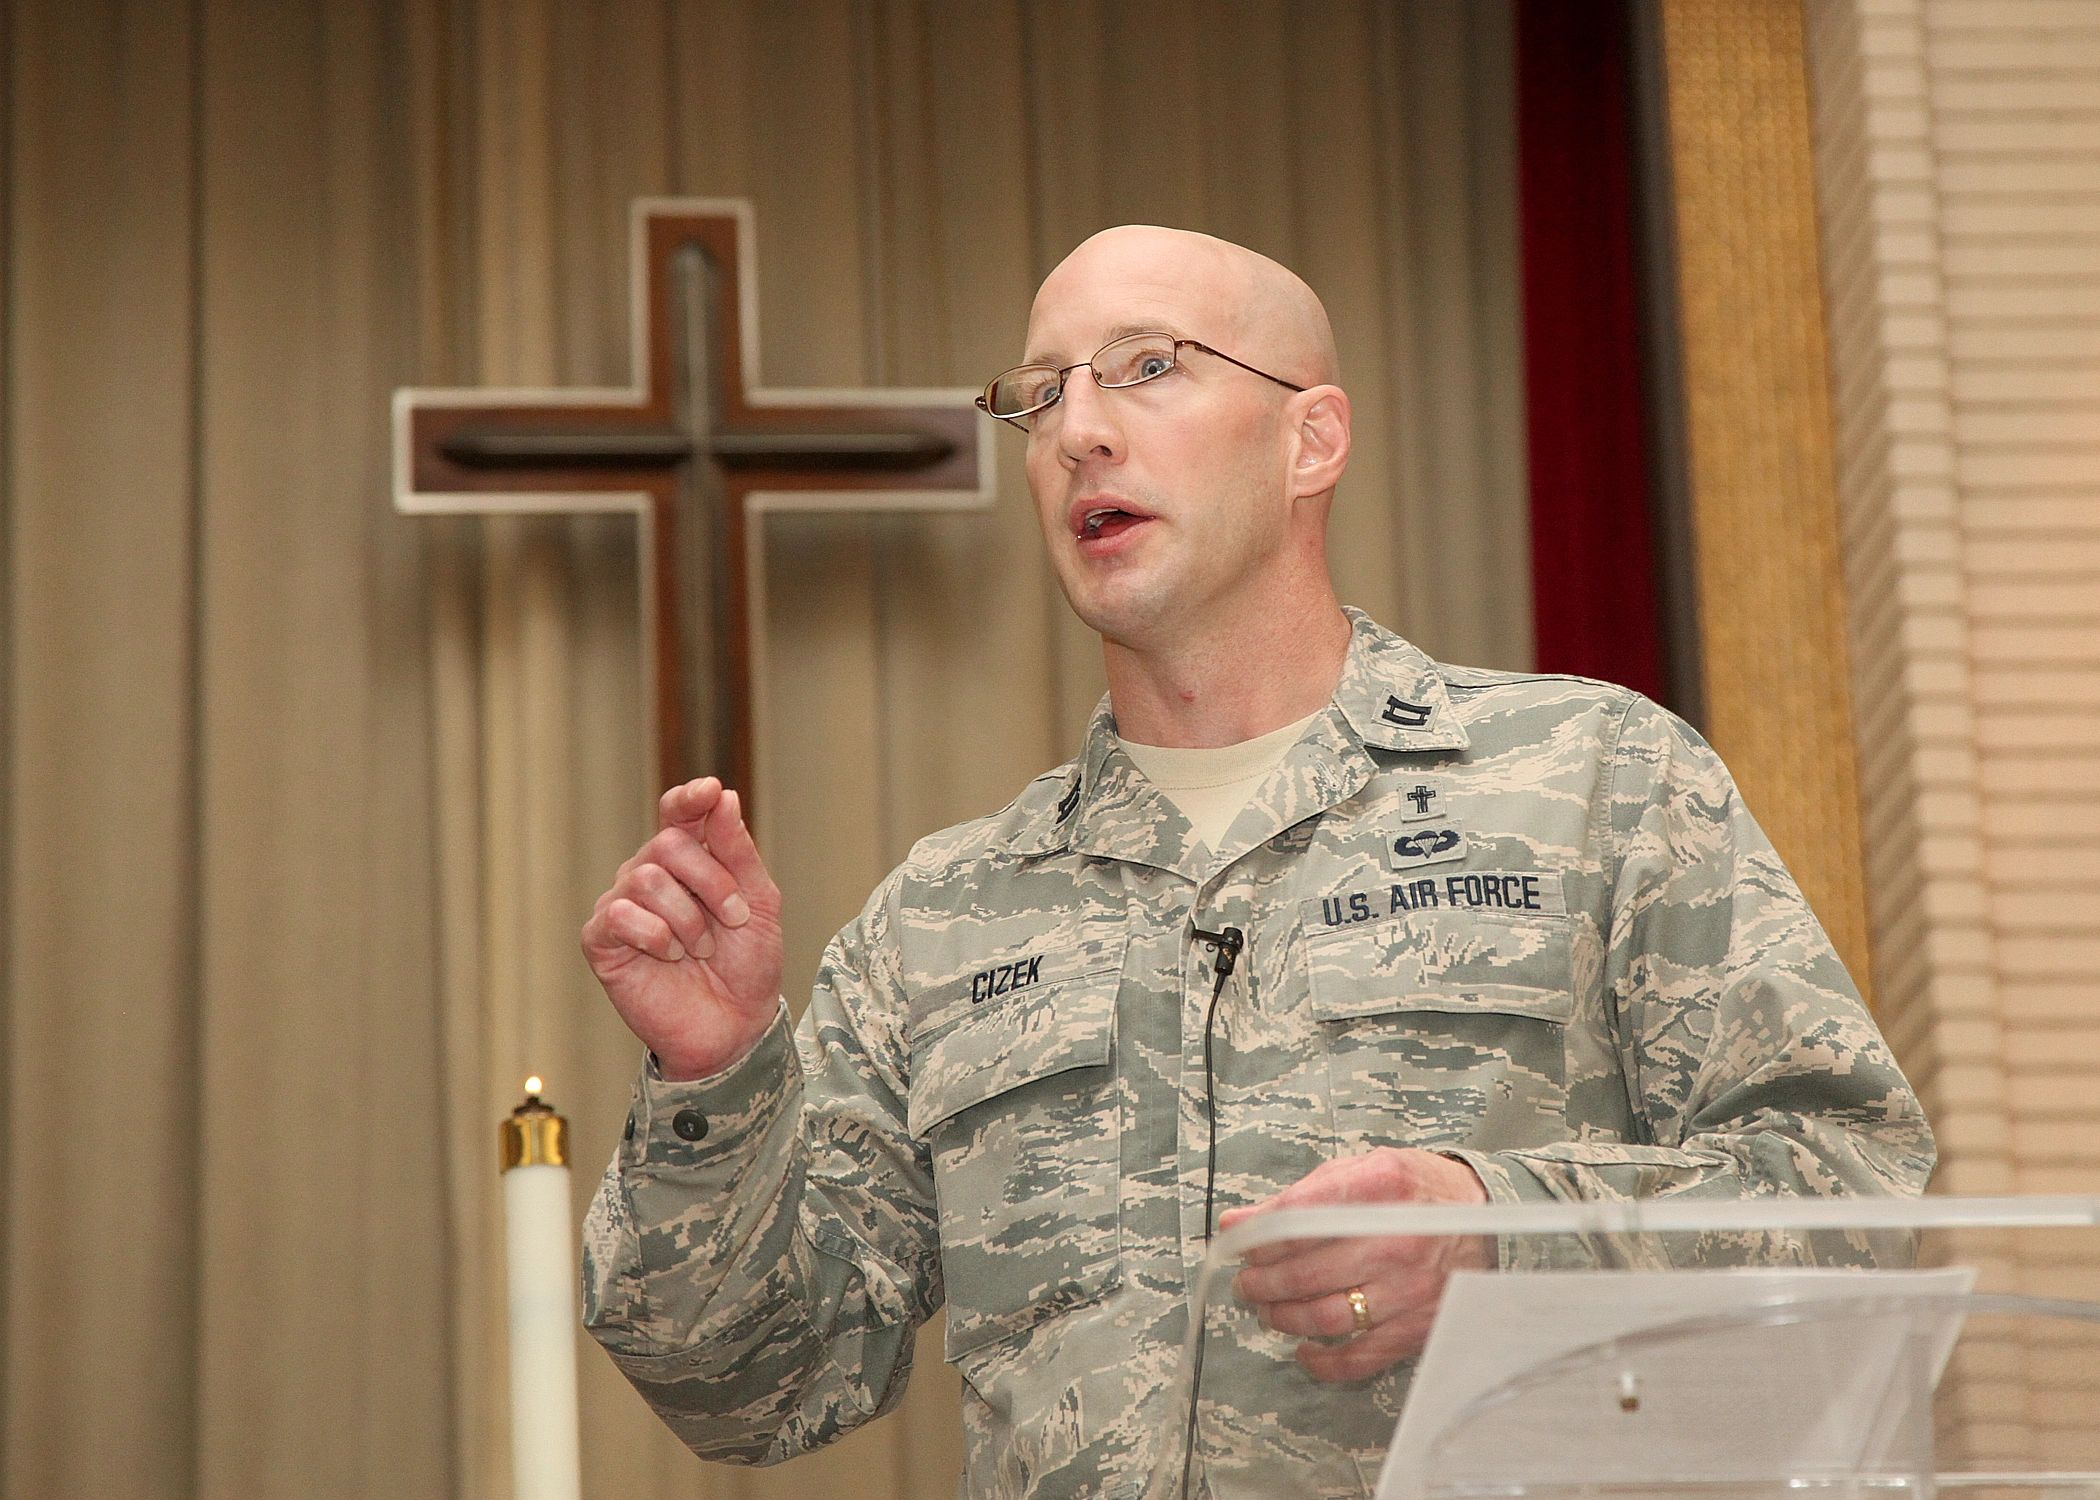 Military Chaplain Fired from Air Force for Biblical Views on Sexual Morality